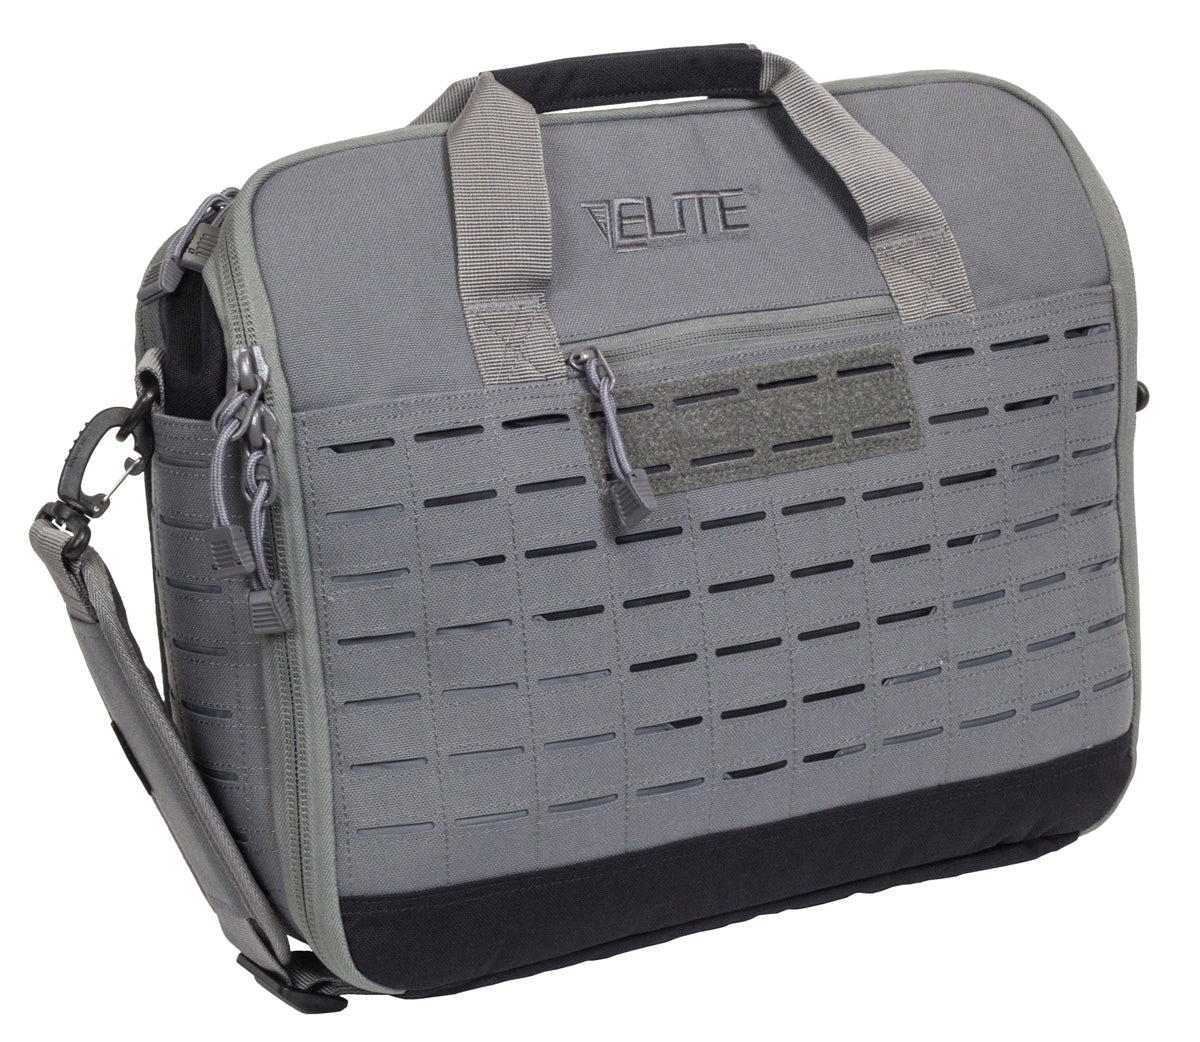 CCW messenger bag in wolf gray color, exterior image